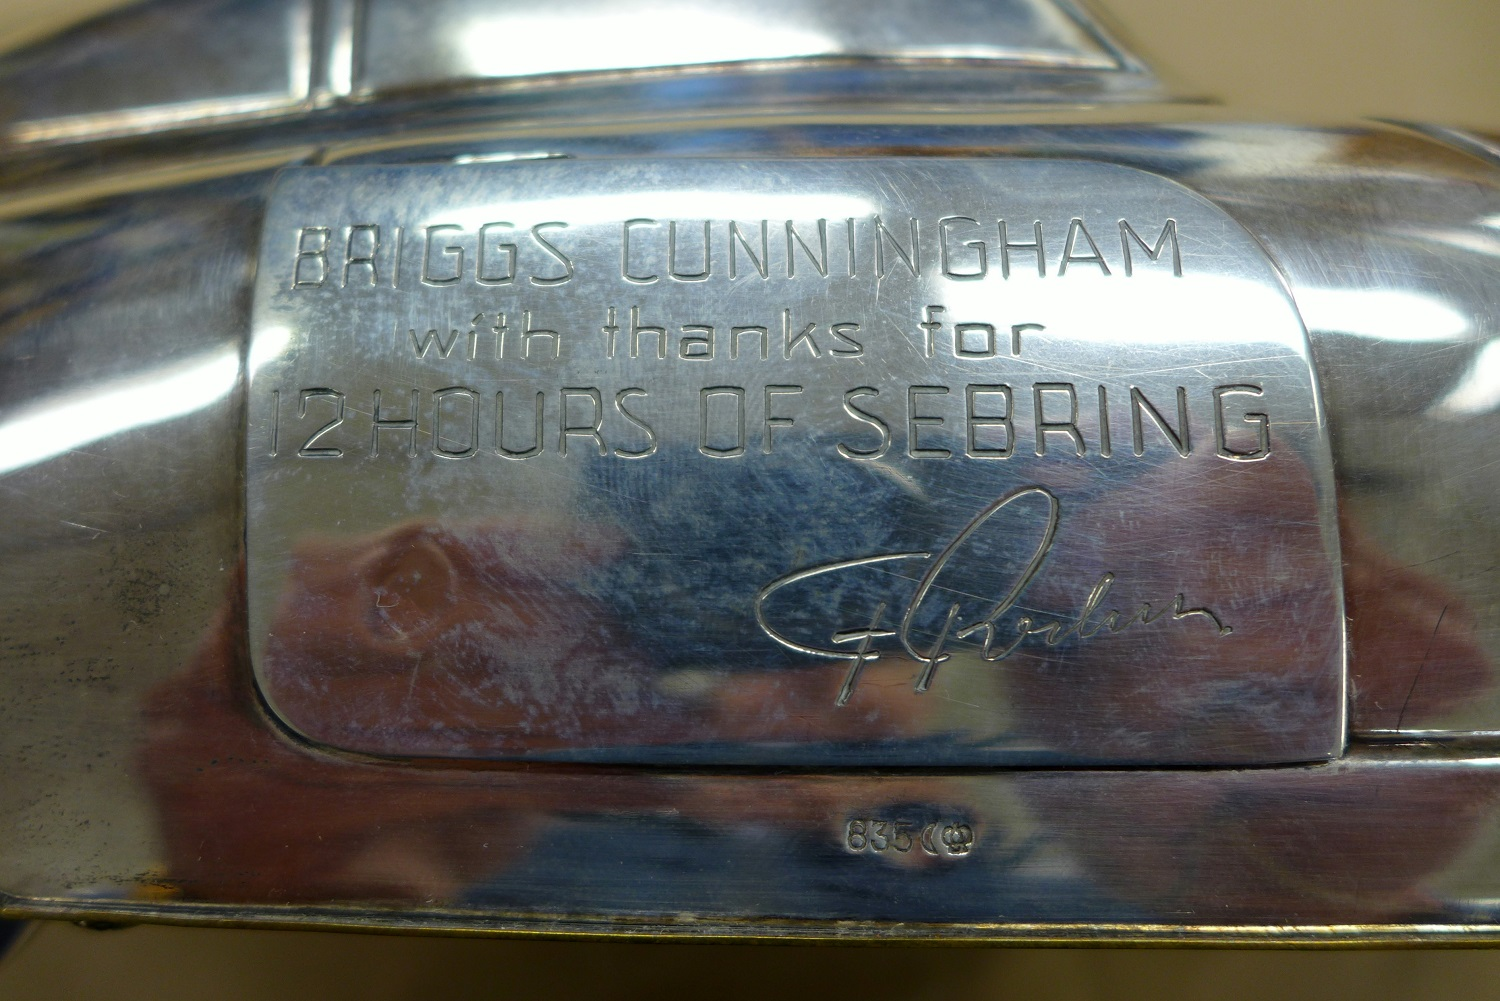 Briggs Cunningham Factory sterling silver presentation gift.